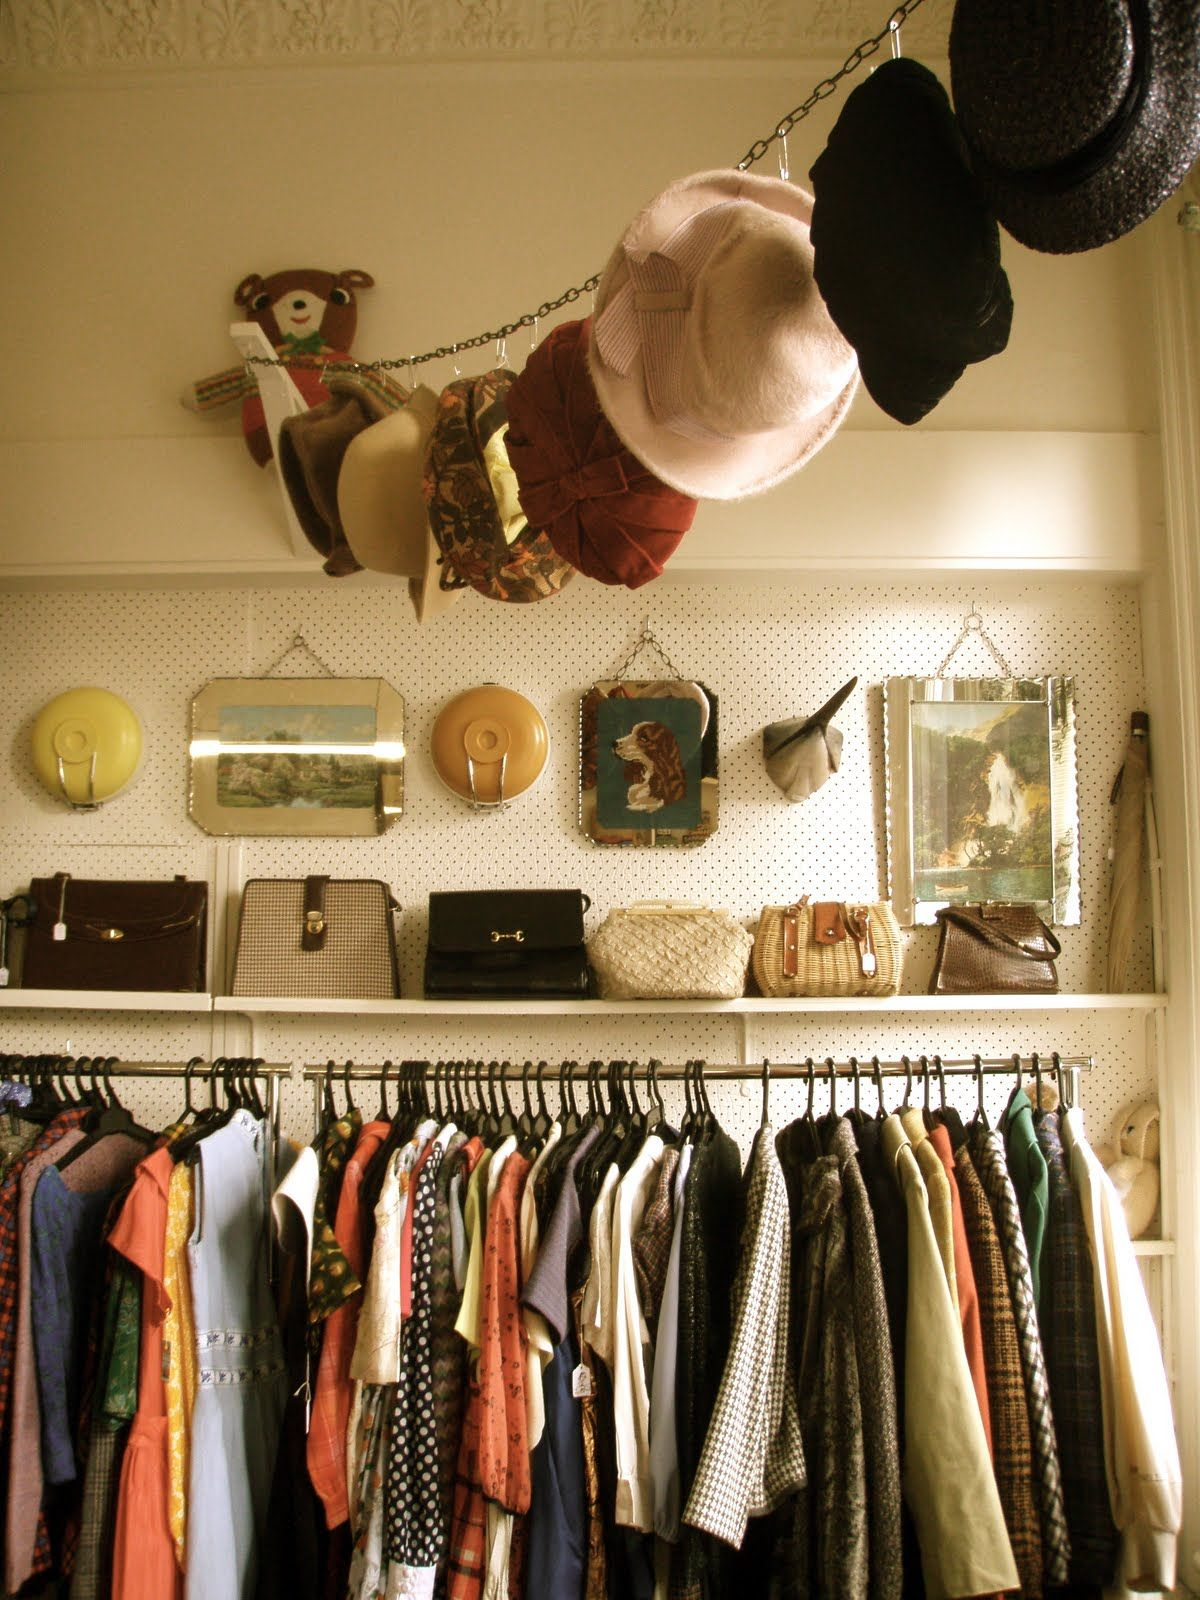 Hat Storage Idea Clothes Pins S Hooks Or Curtain Hangers Decorated Top Shelf Area Of The Closet With Purses Extras